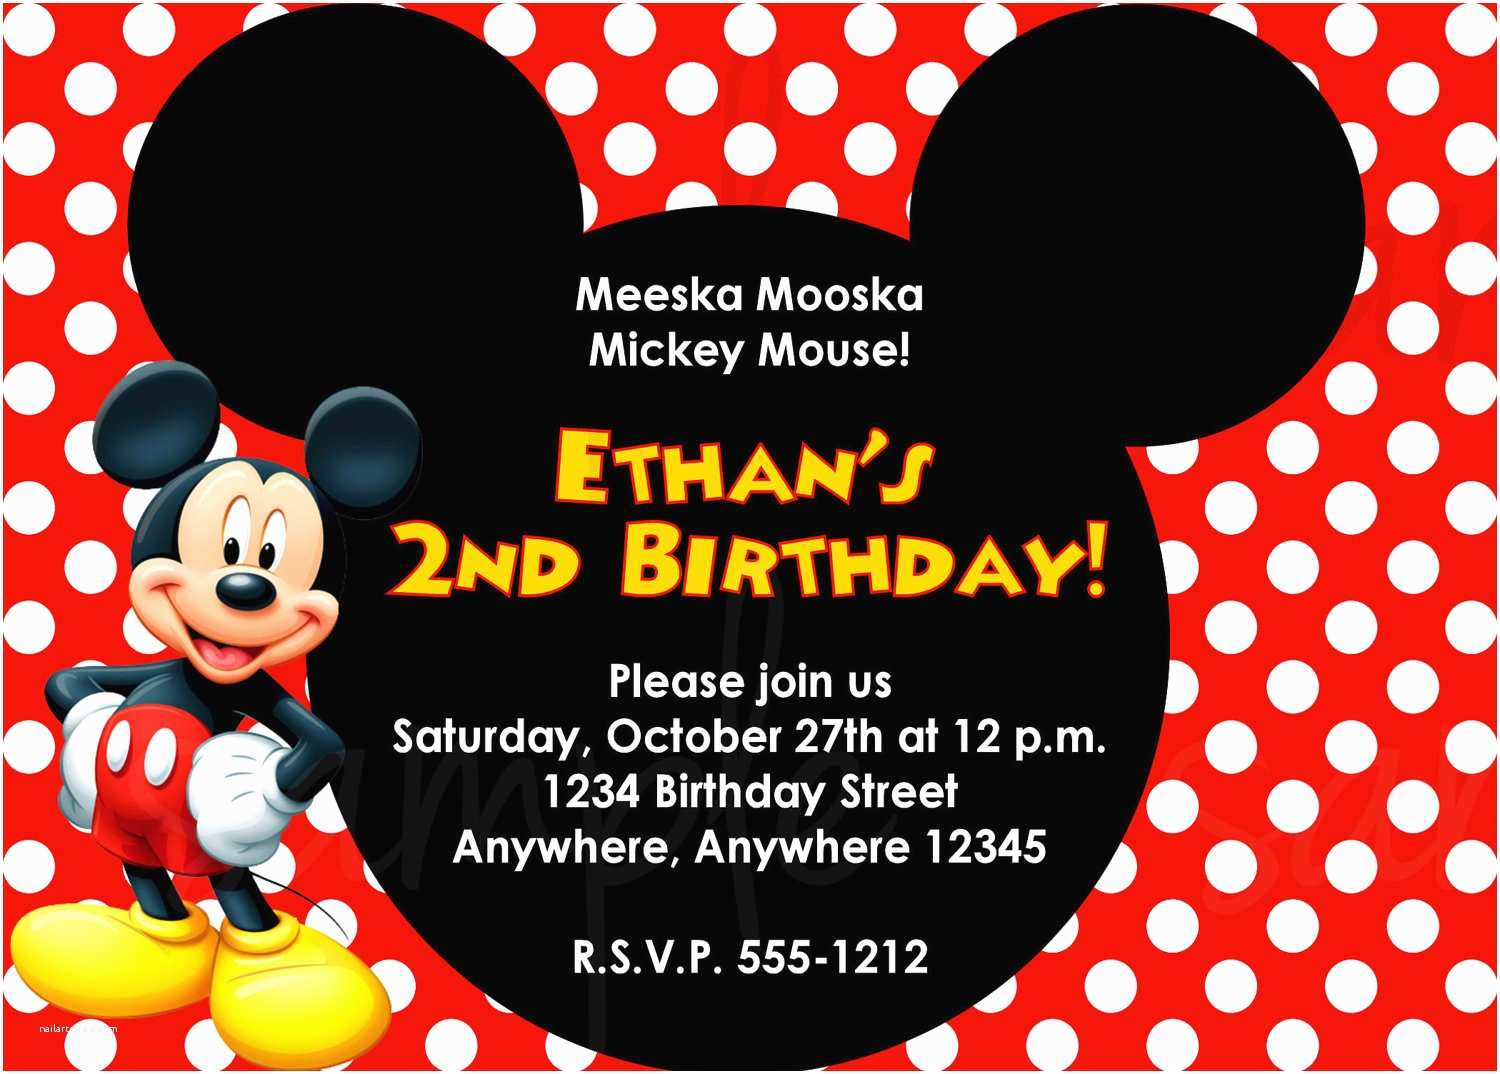 Mickey Mouse Birthday Party Invitations Mickey Mouse Birthday Invitation